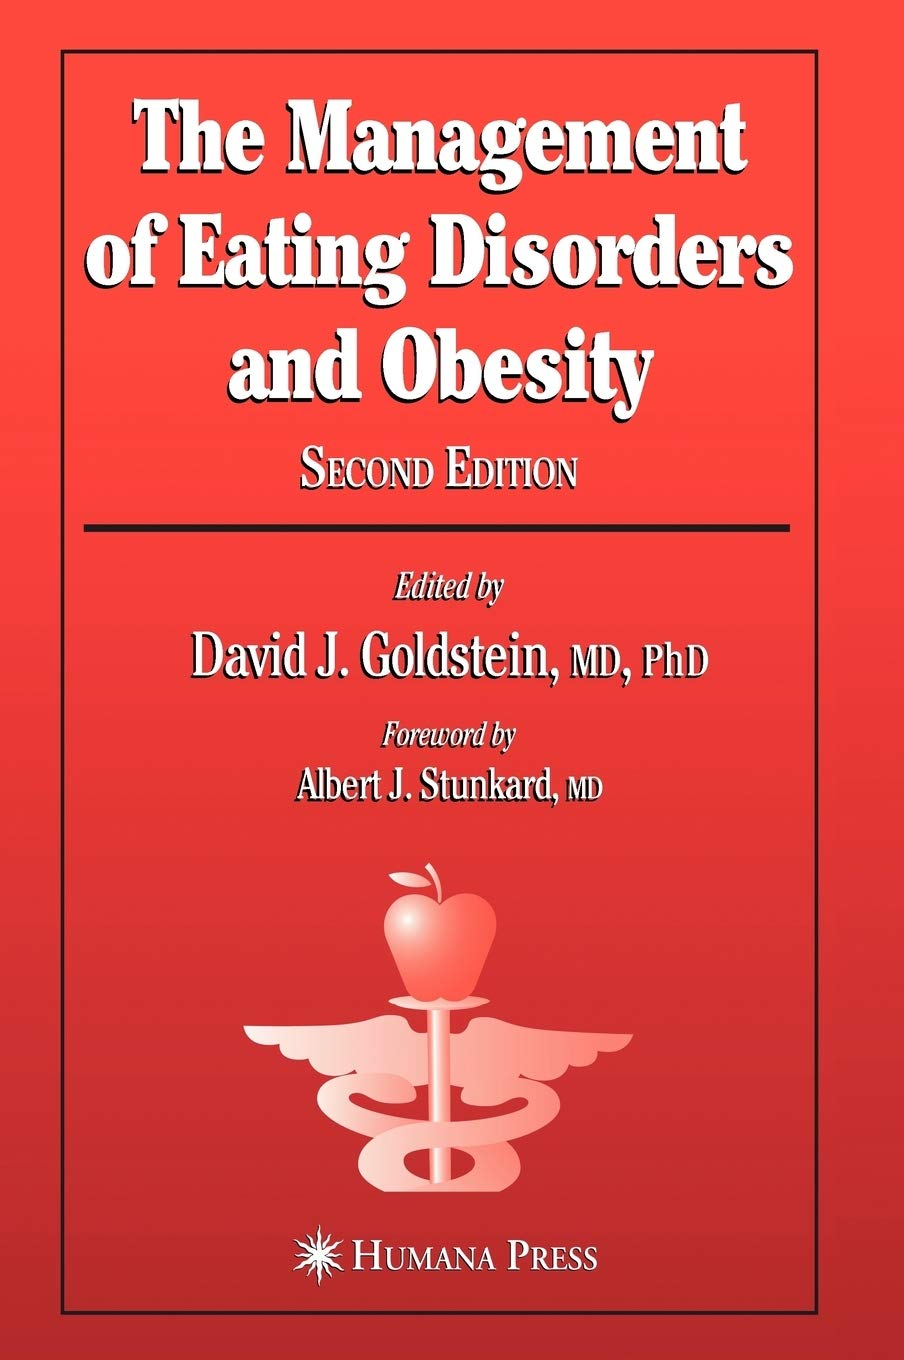 Download The Management Of Eating Disorders And Obesity (Nutrition And Health) 